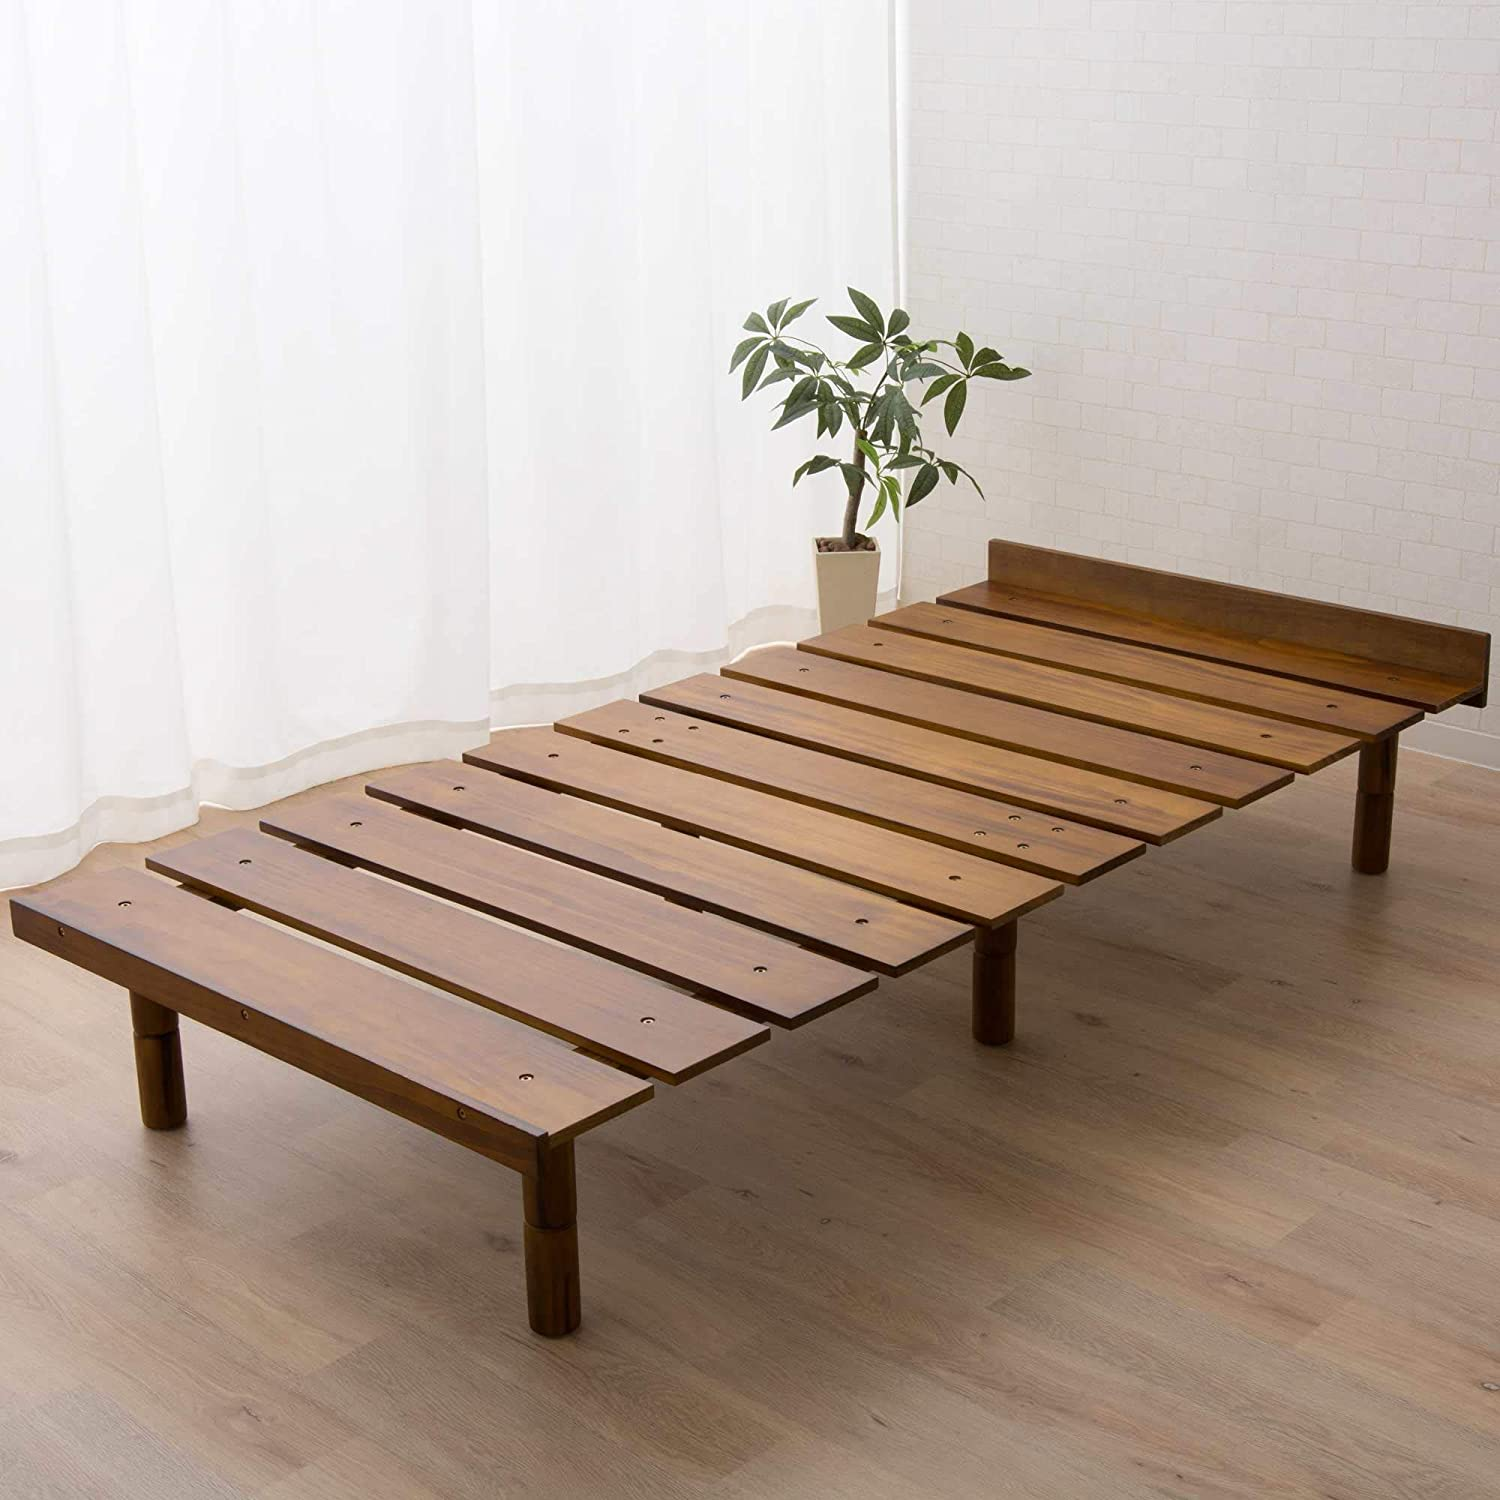 EMOOR Solid Pine Wood Slatted Platform Bed Frame OSMOS for Japanese Twin Size Futon Mattress (39x79in), Height Adjustable (2/7/12in), Retro-Brown